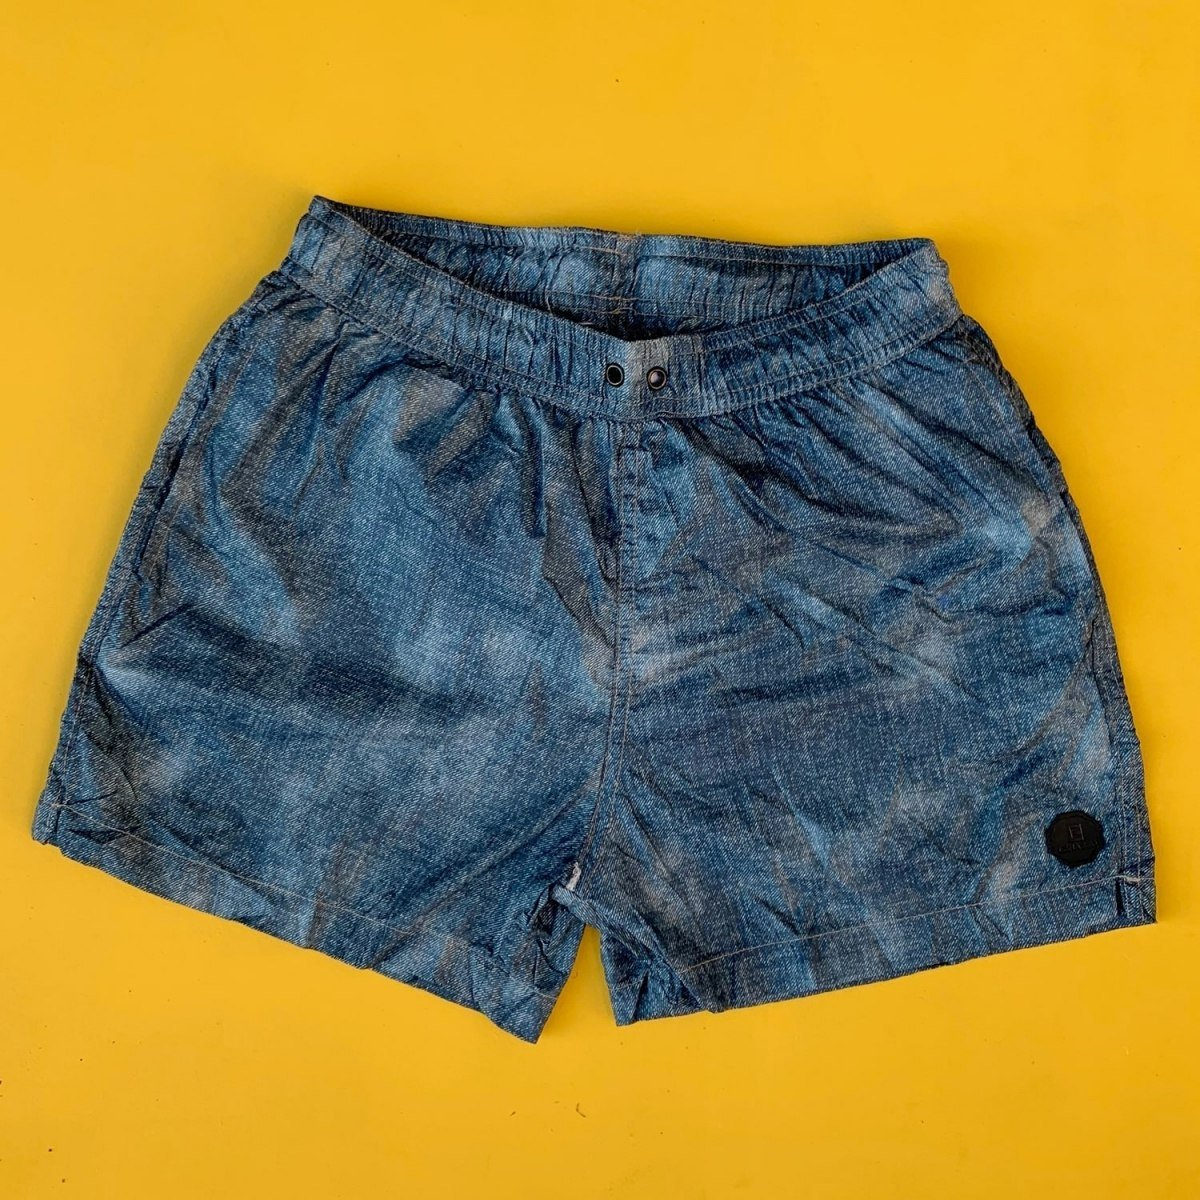 Men's Denim Design Basic Short Swim Shorts Petrol Blue